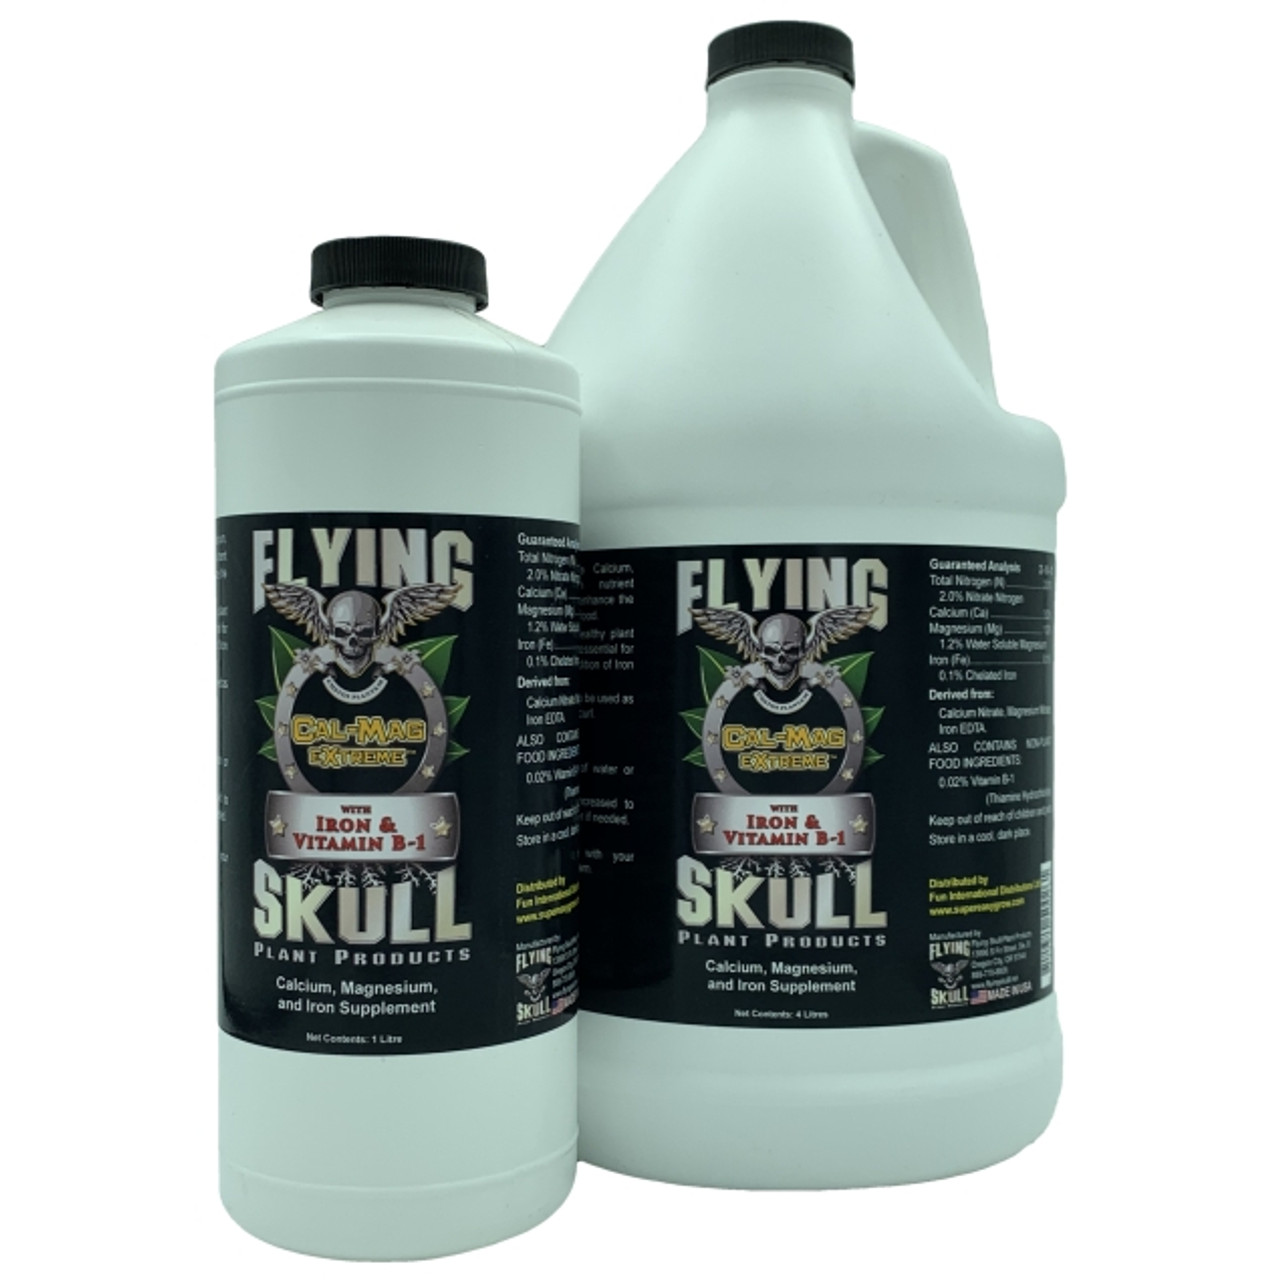 Flying Skull Cal-Mag eXtreme Bottles - 1 litre and 4 litres